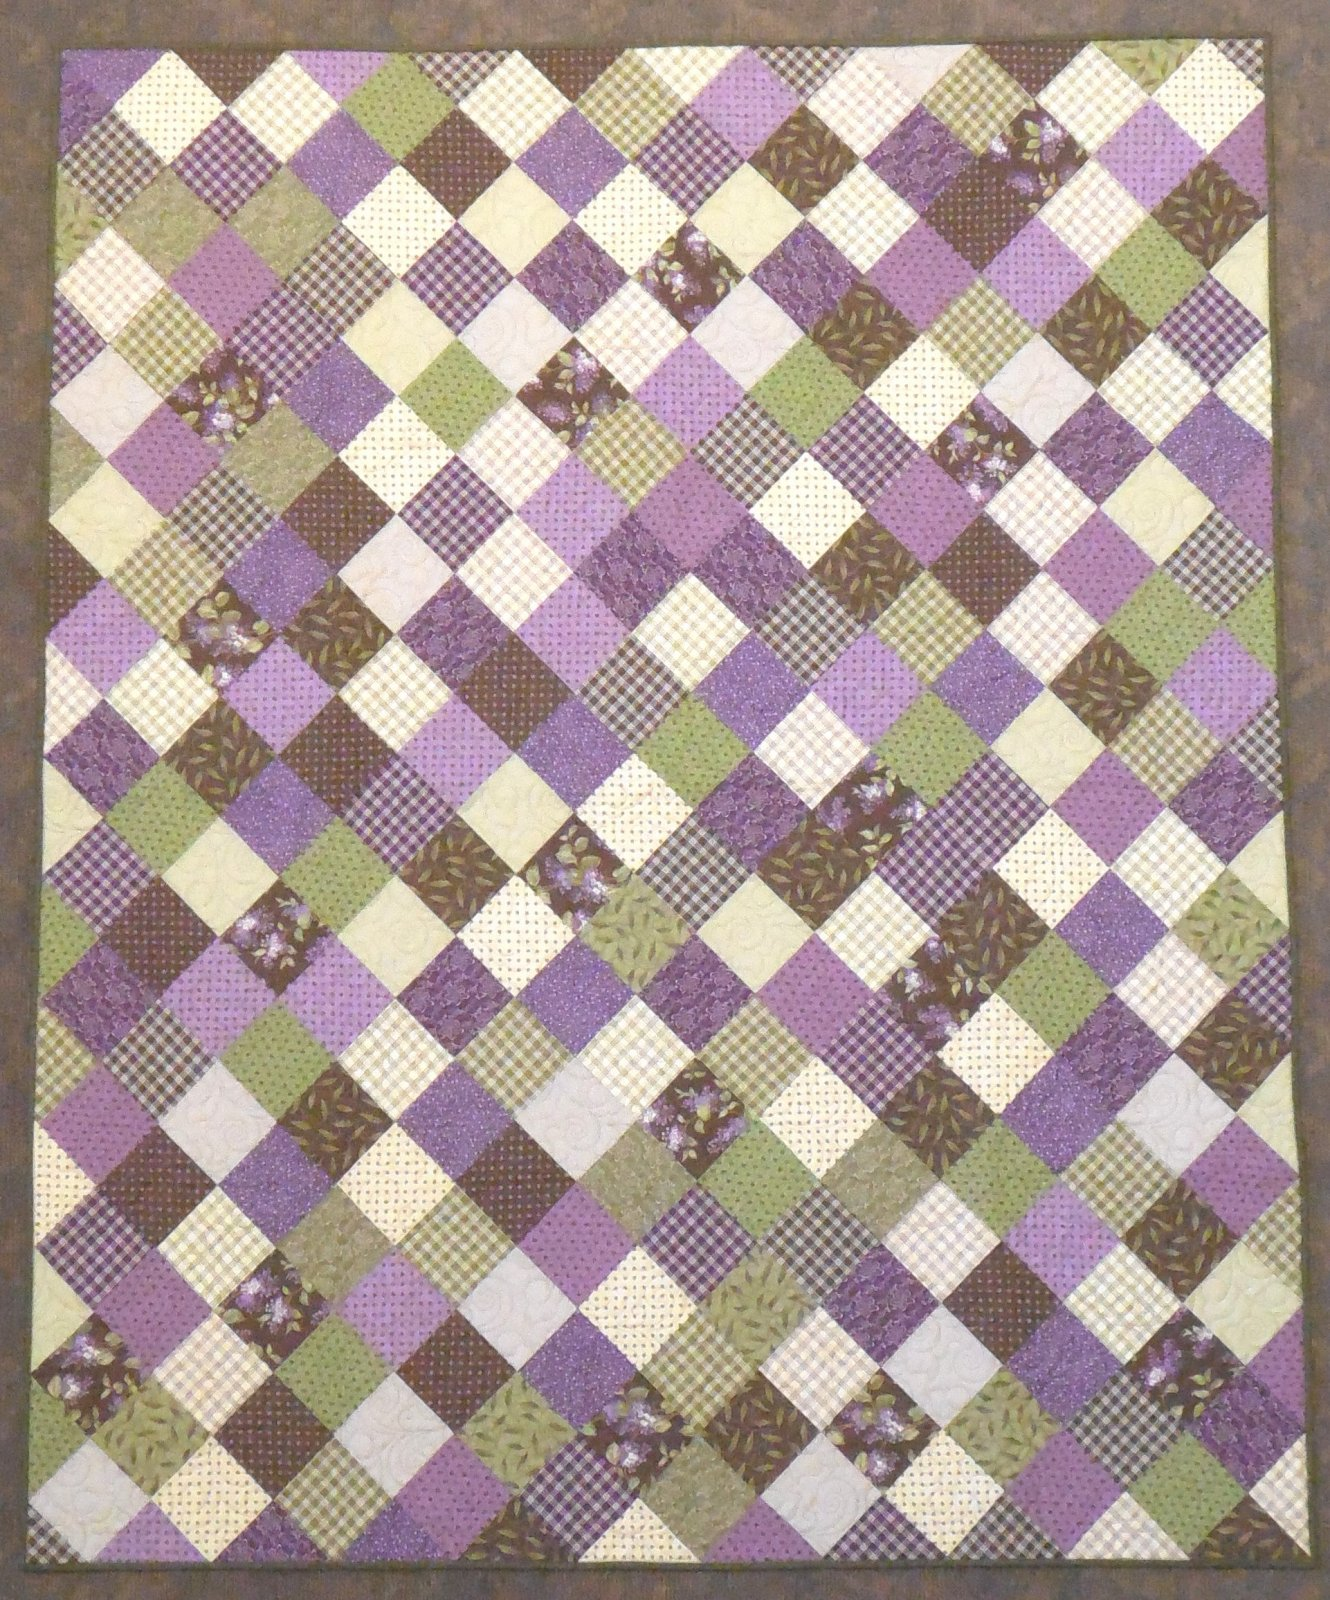 Patchwork on point-Lilac Ridge Quilt Kit 60 x 71